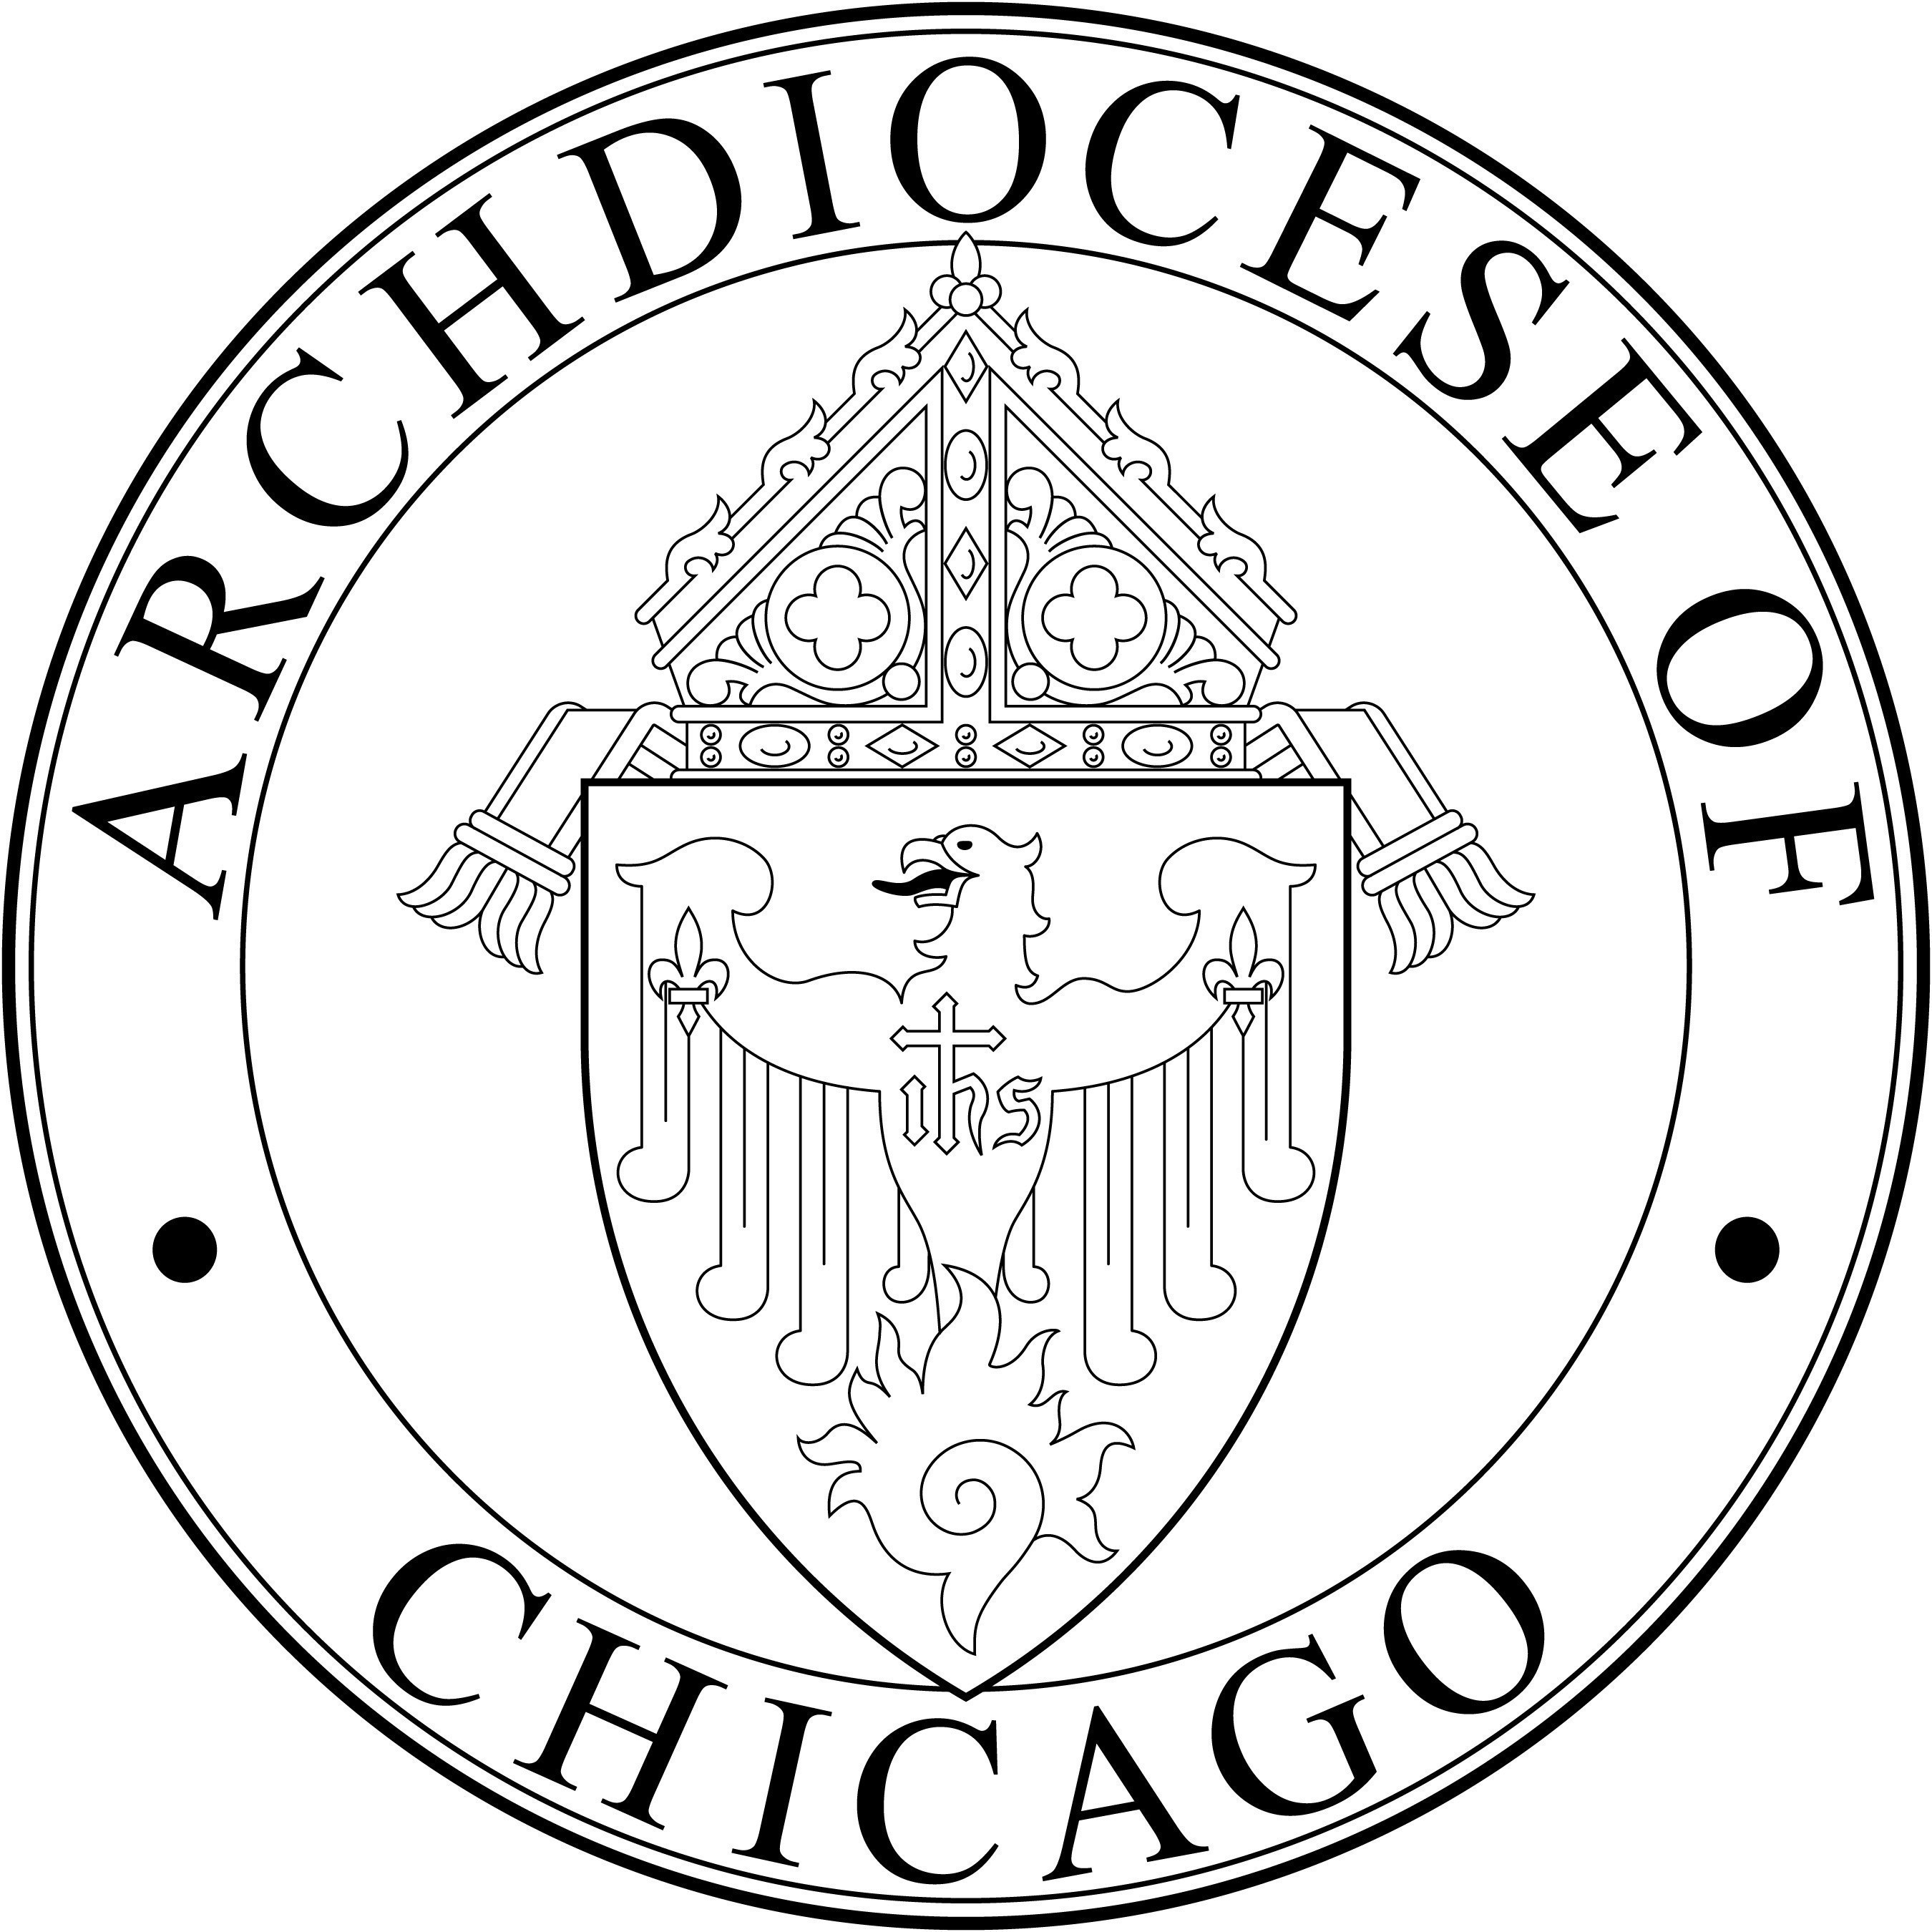 Archdiocese Of Chicago Names Grant Gallicho Director Of Publications And Media